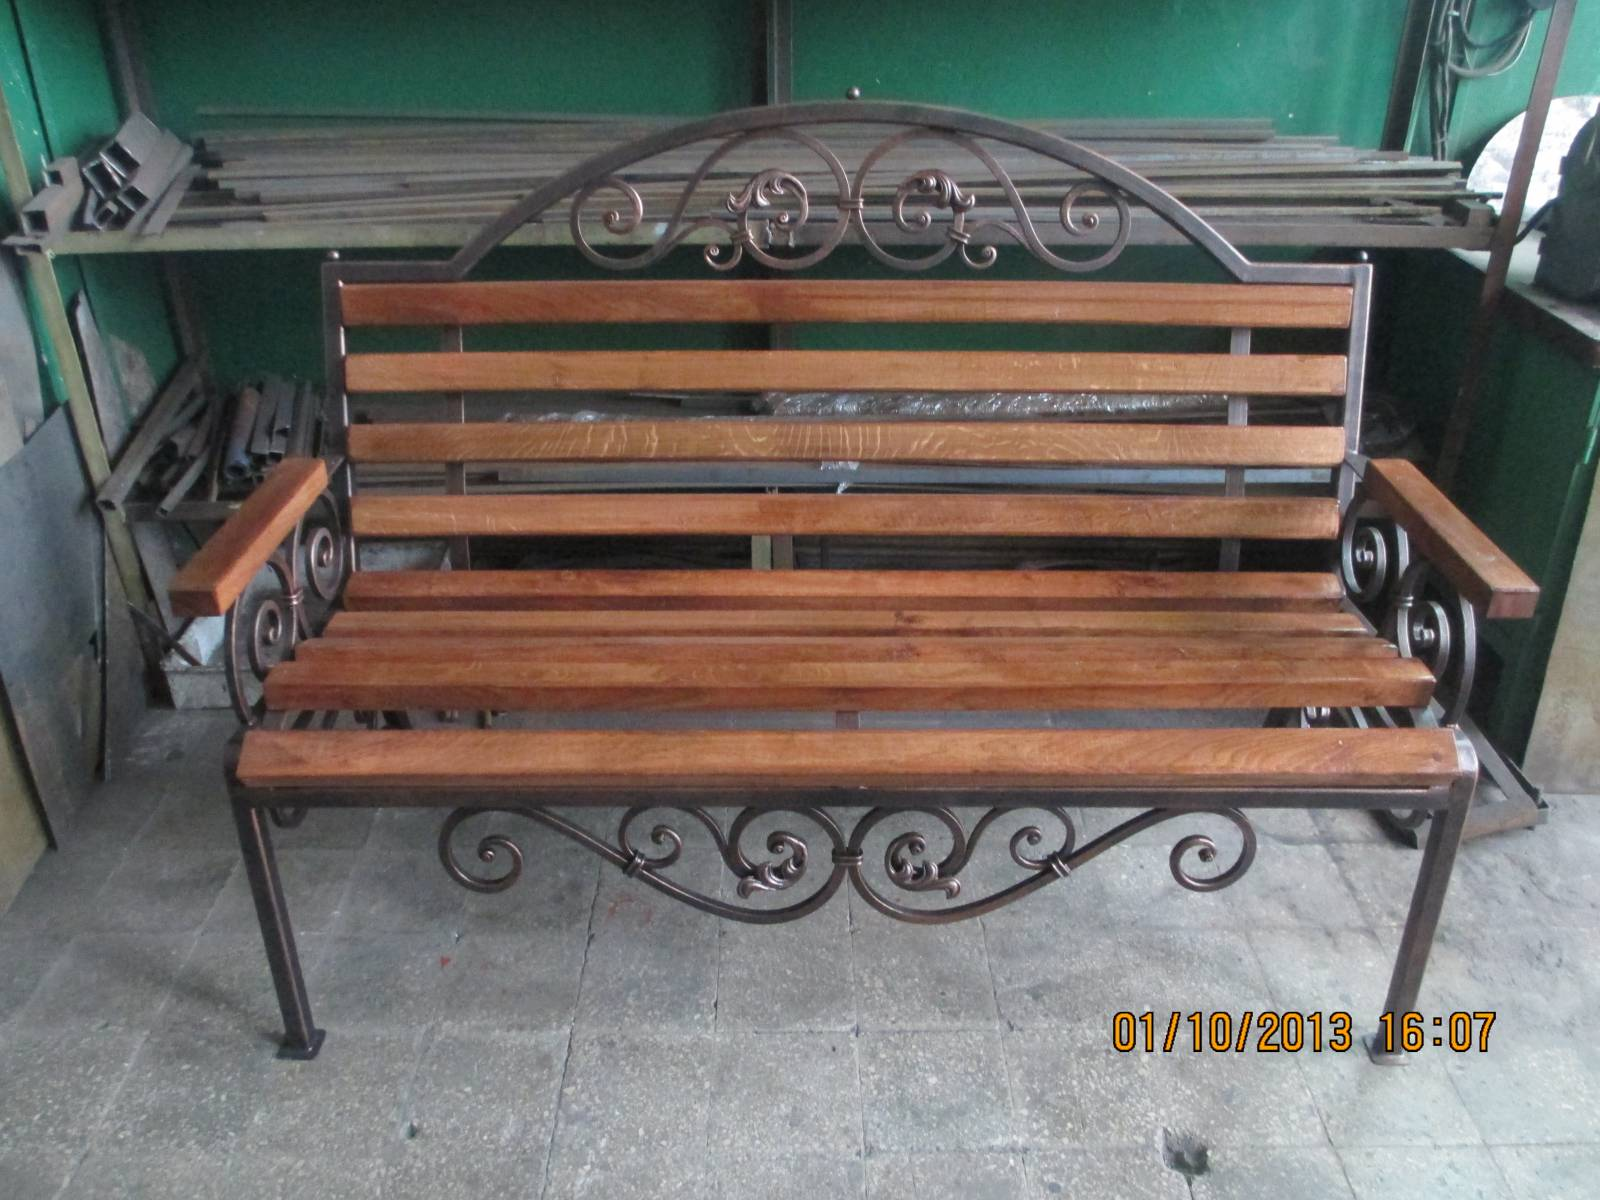 wrought period iron shop the english bench regency elemental benches img garden